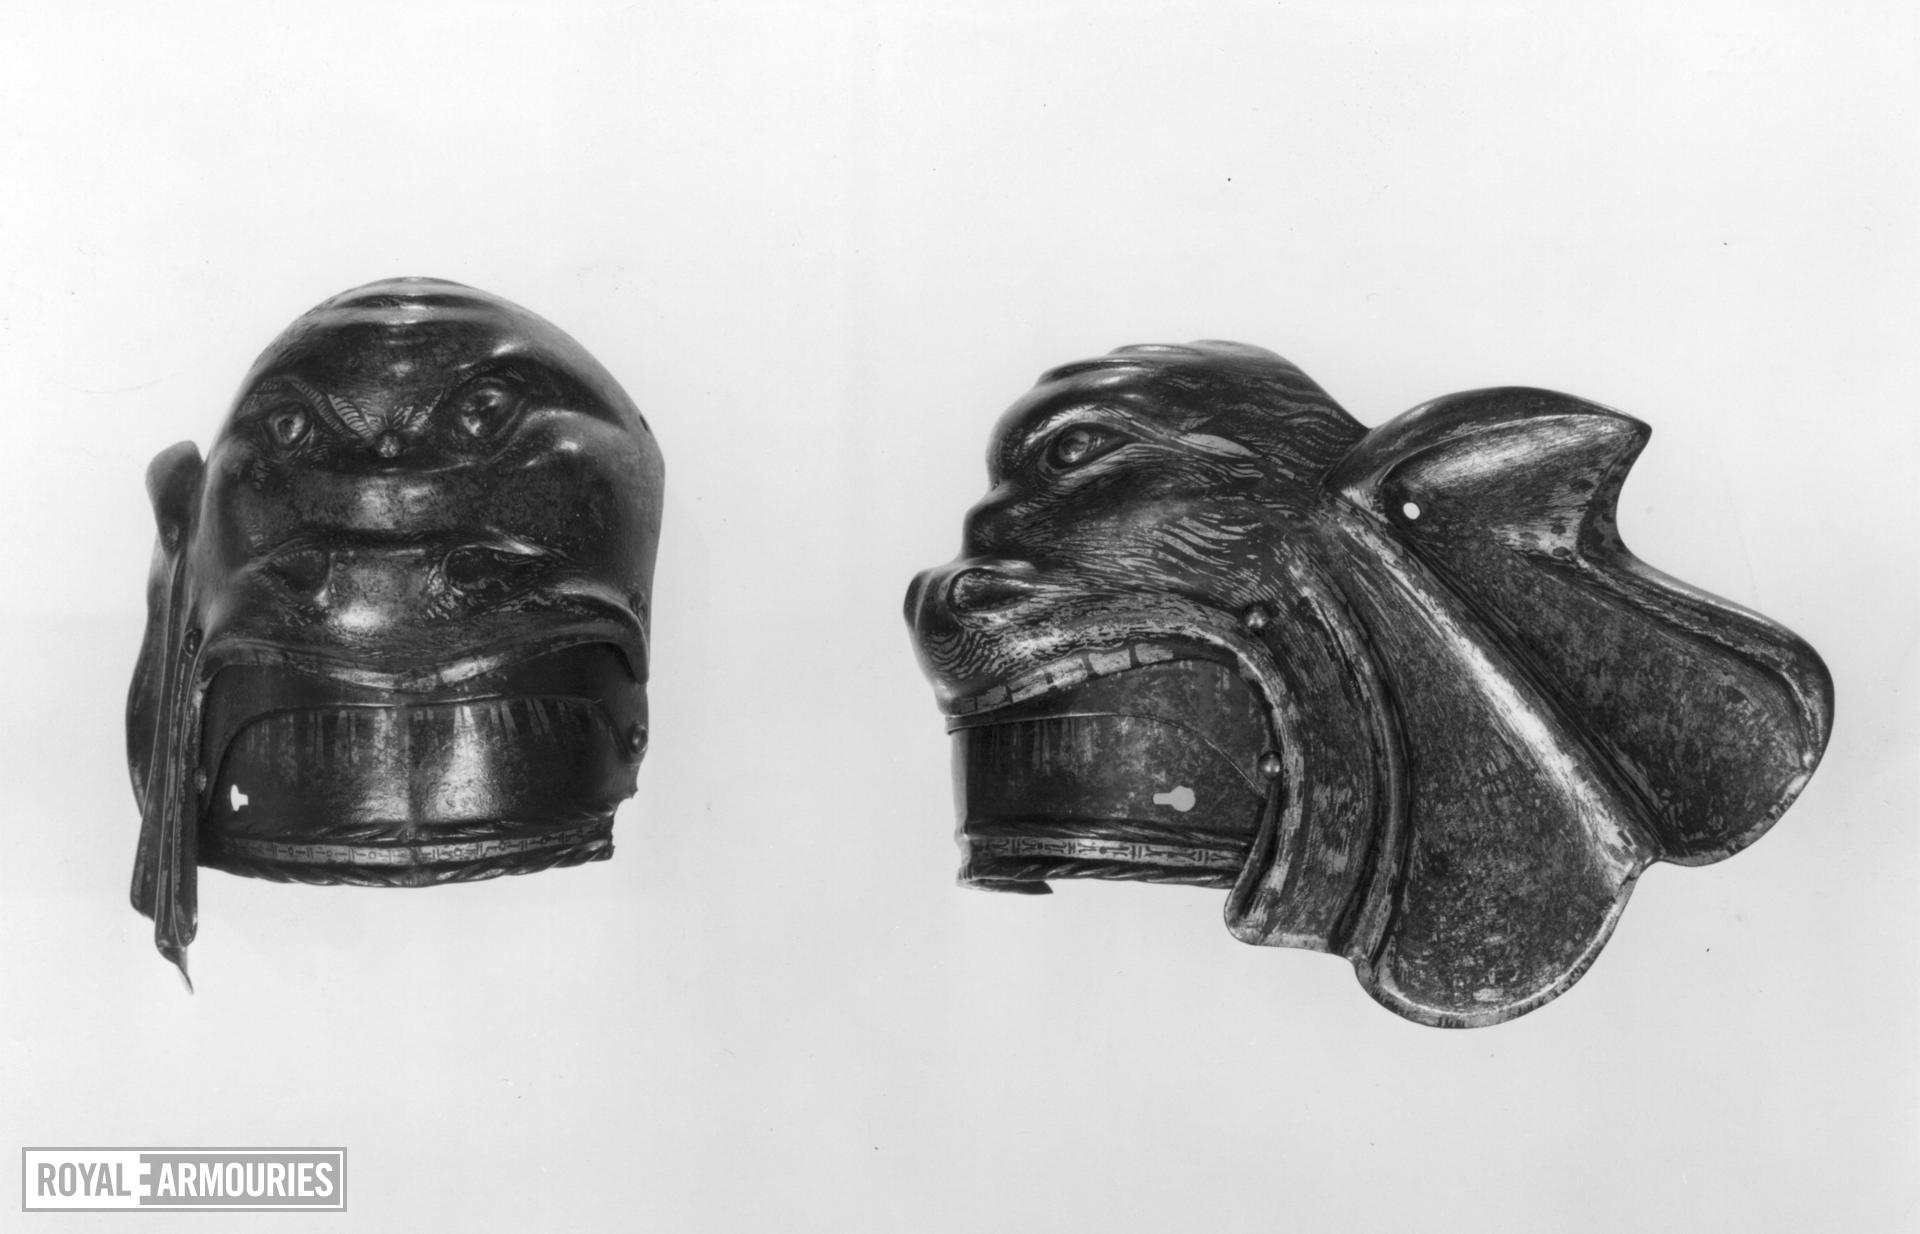 Right poleyn of Charles V, by Kolman Helmschmid. A pair with III.850.